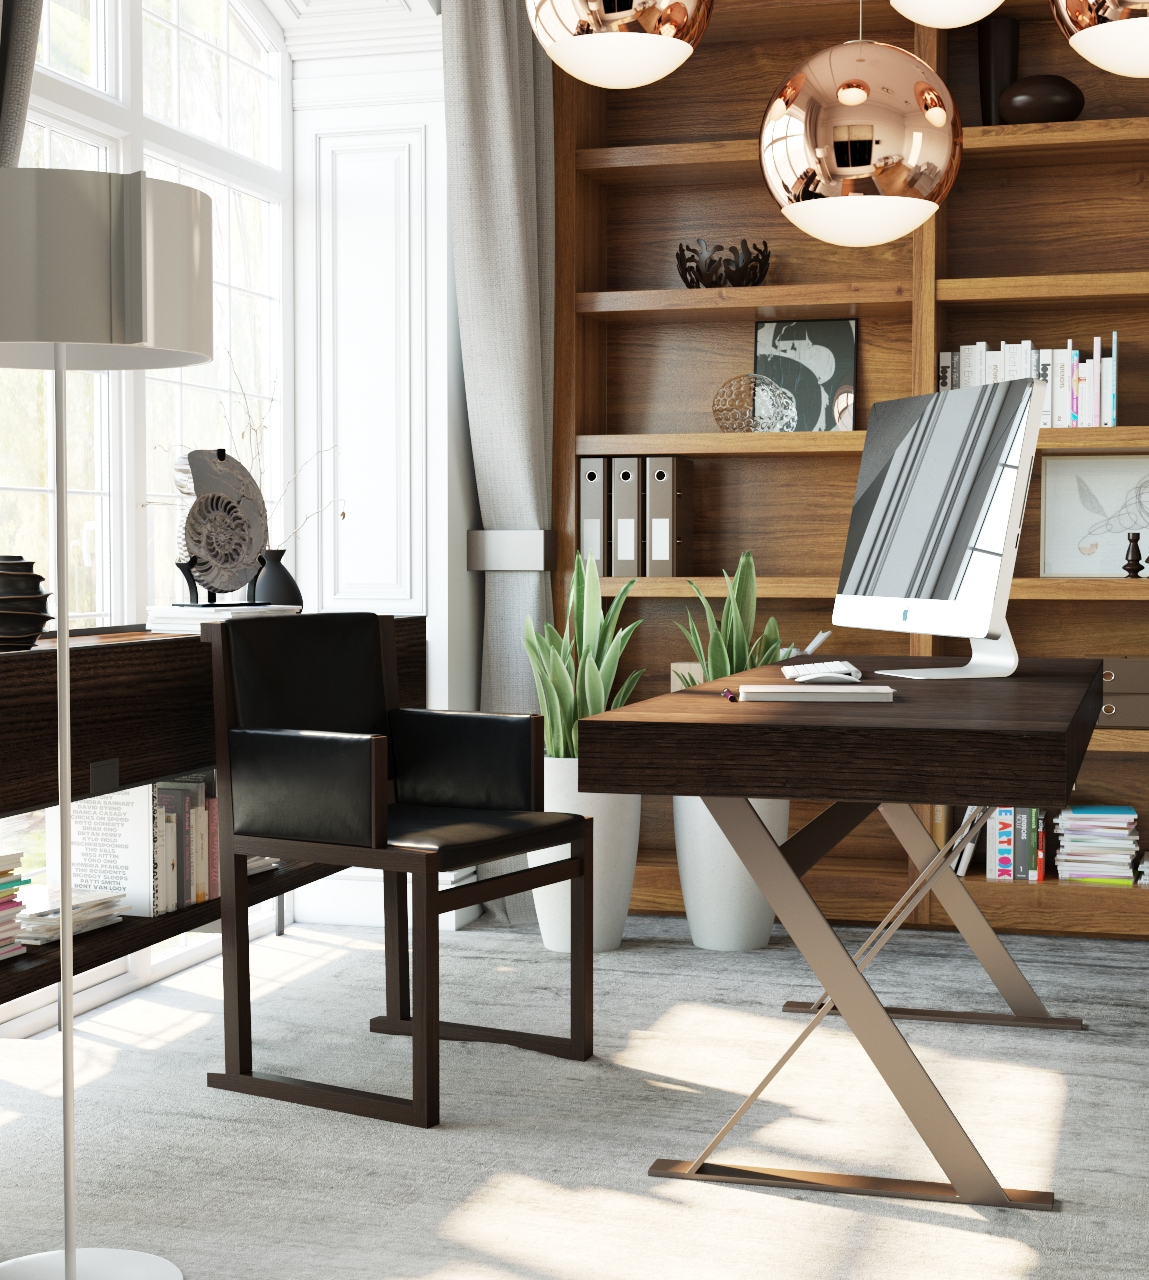 Cool Drafting Table - 3 examples of modern simplicity